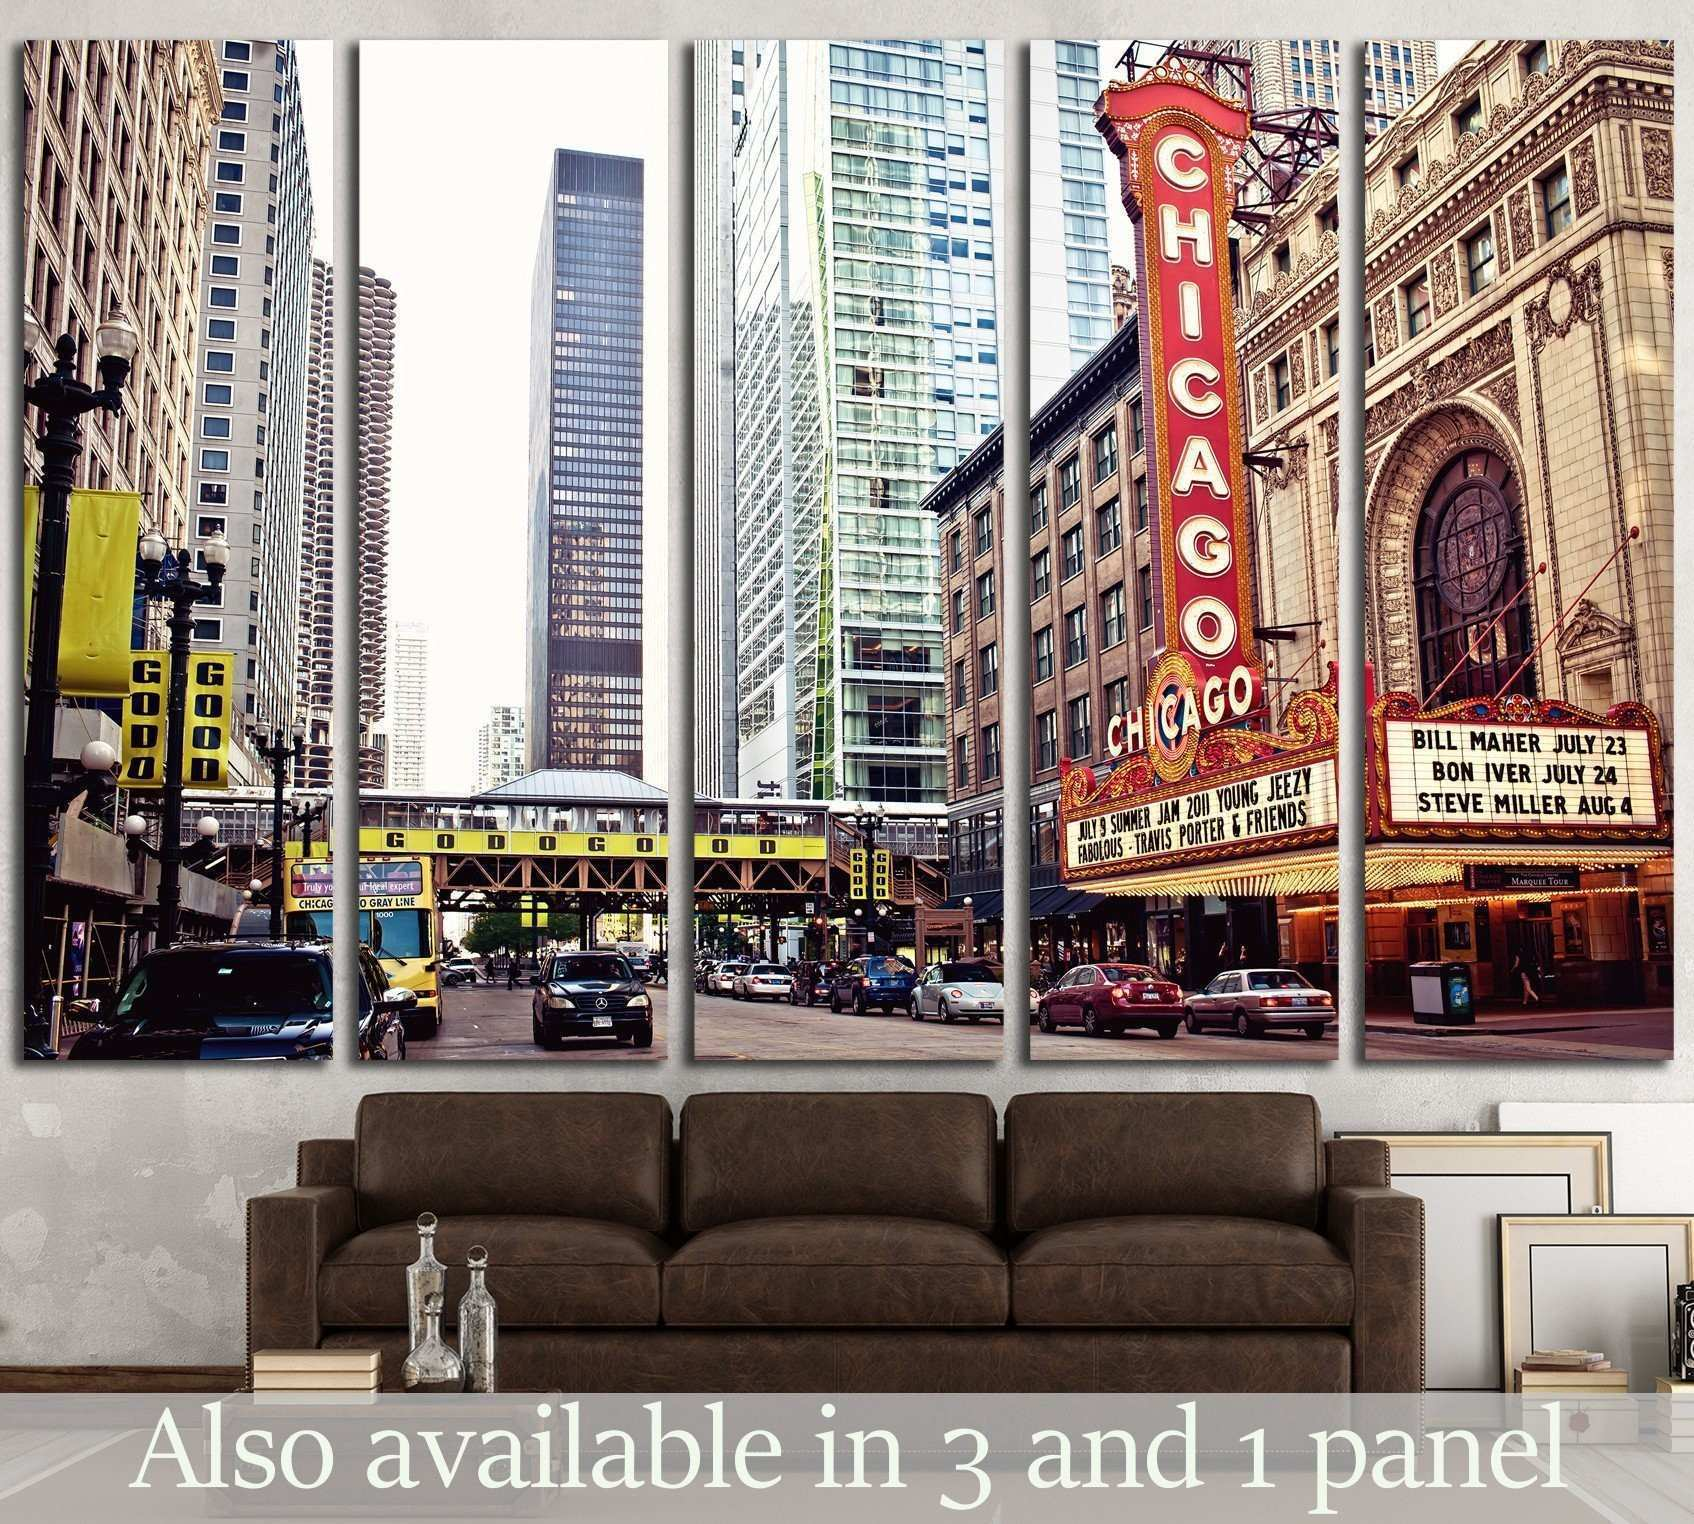 Chicago Theater on State Street Chicago Illinois №2141 Ready to